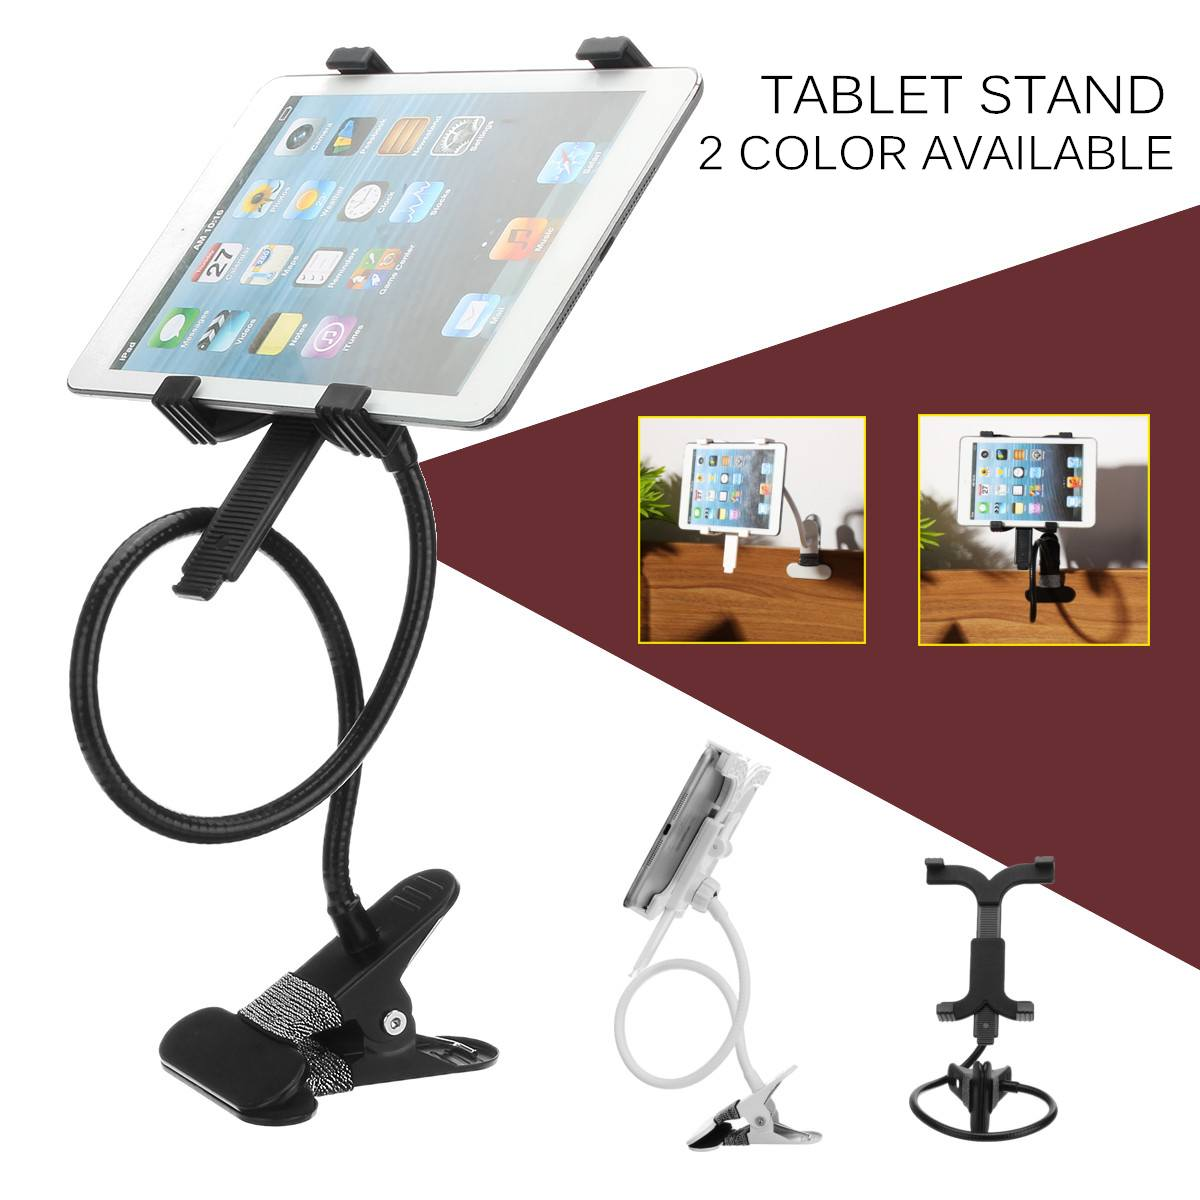 Universal 360 Rotating Tablet Stand Bed Desk Mount Holder Clamp For 7 Inch 10 Inch Tablet Bracket Tools Tablet Accessories